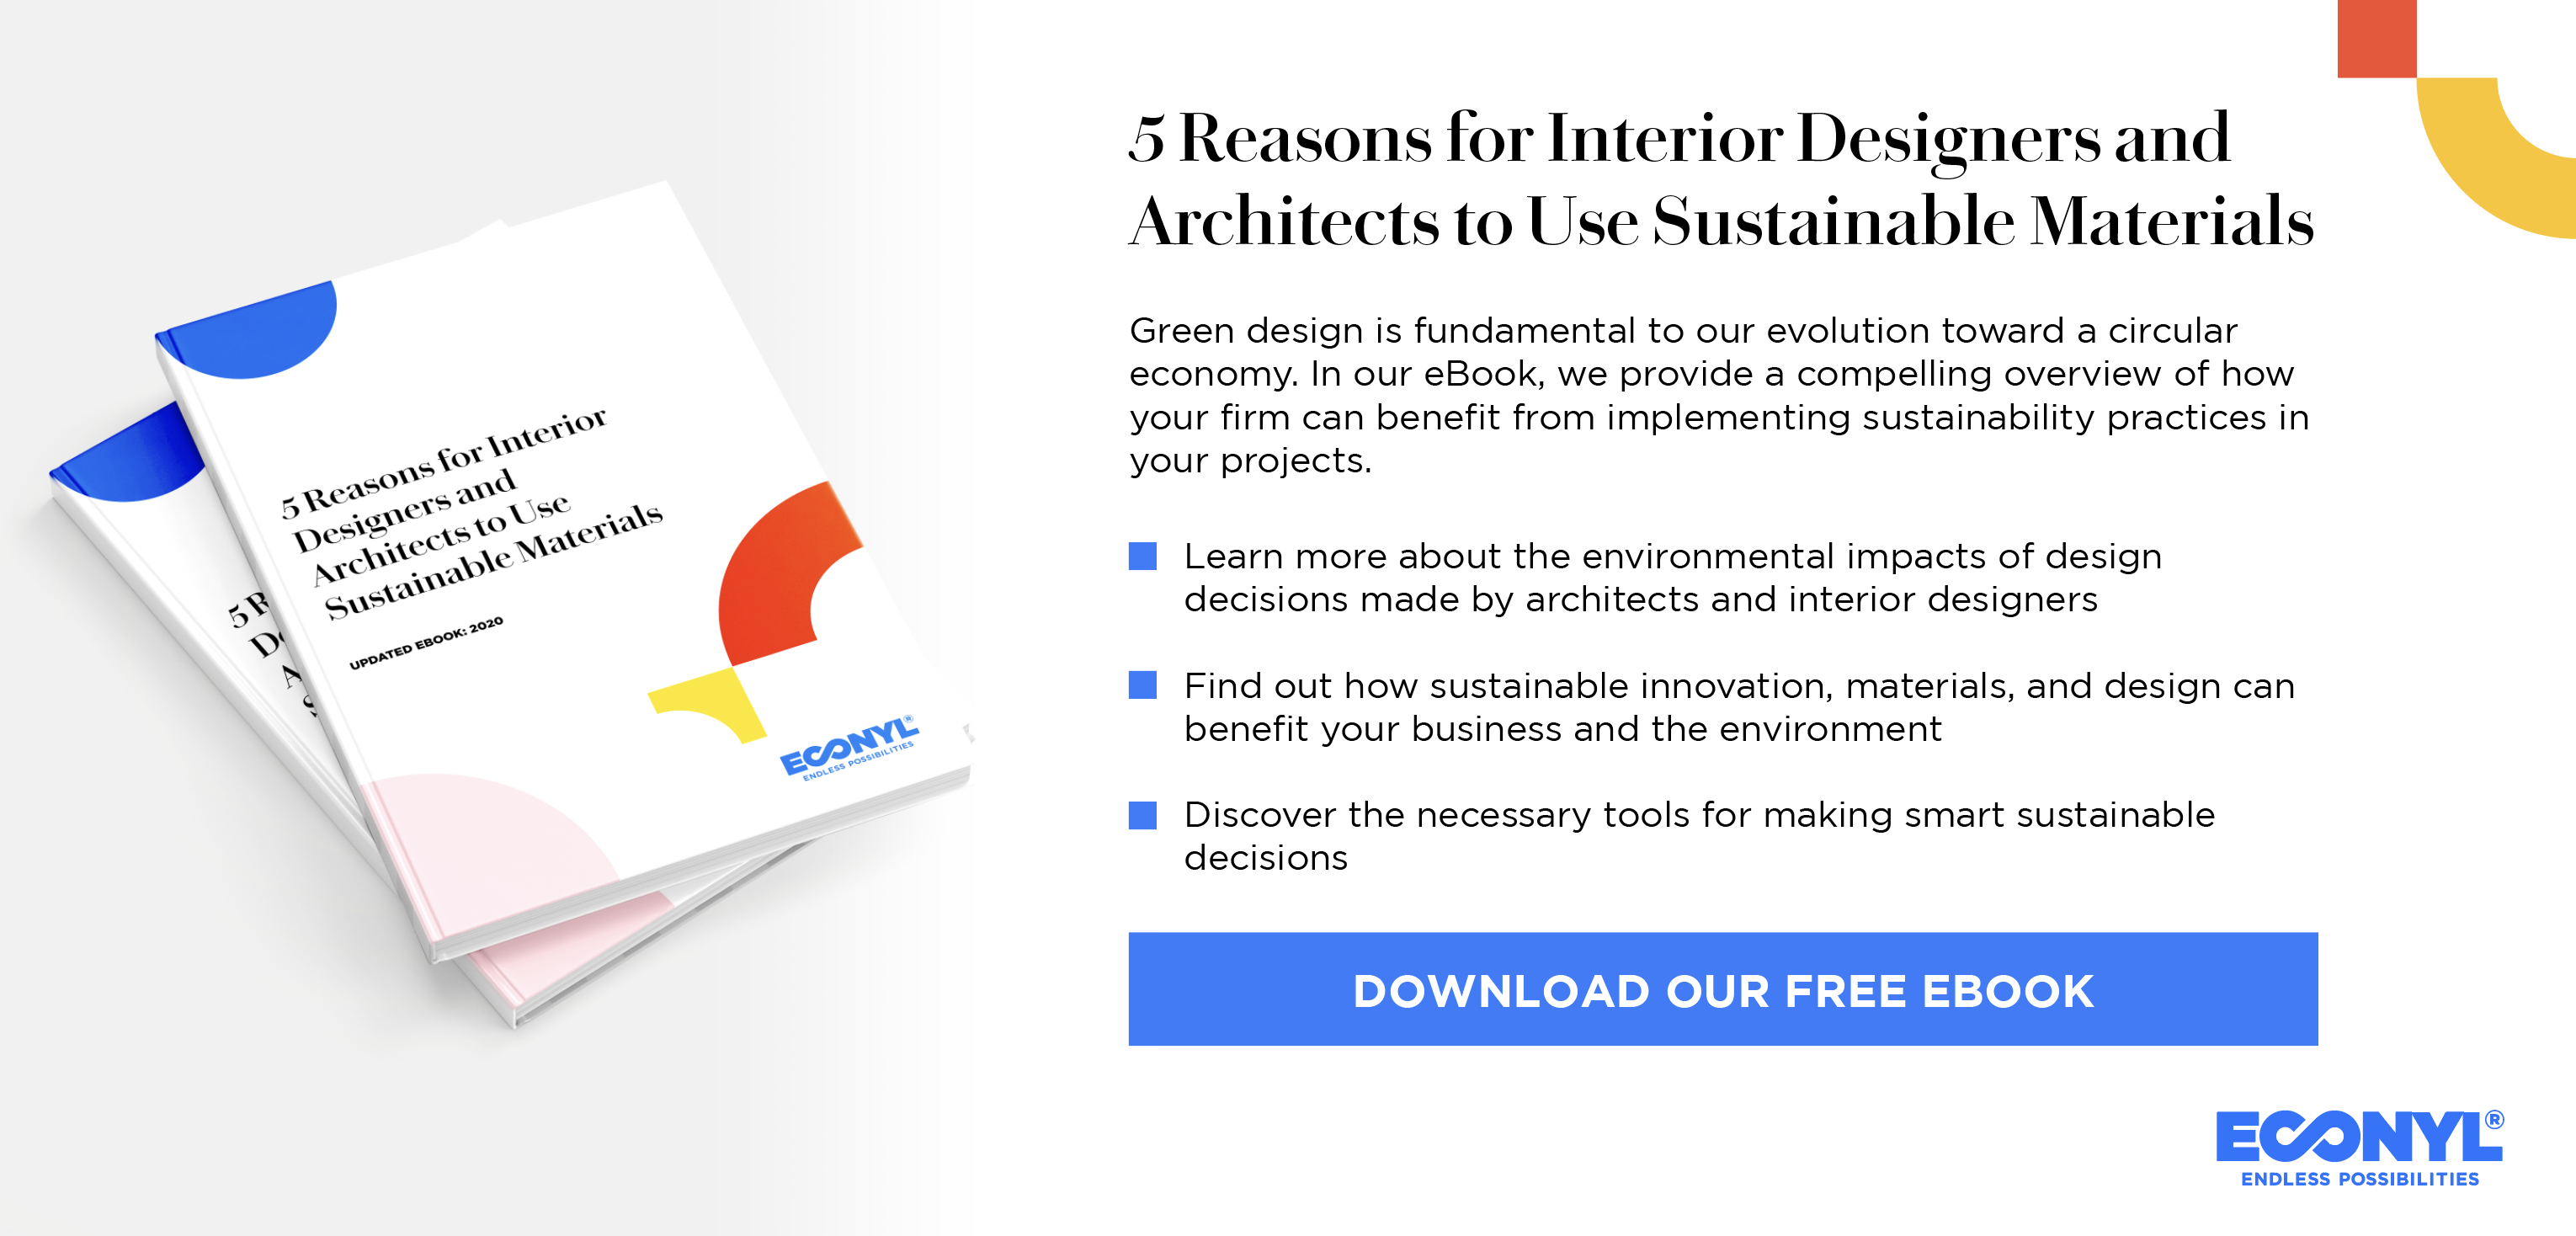 https://www.econyl.com/whitepaper/5-reasons-for-interior-designers-and-architects-to-use-sustainable-materials/